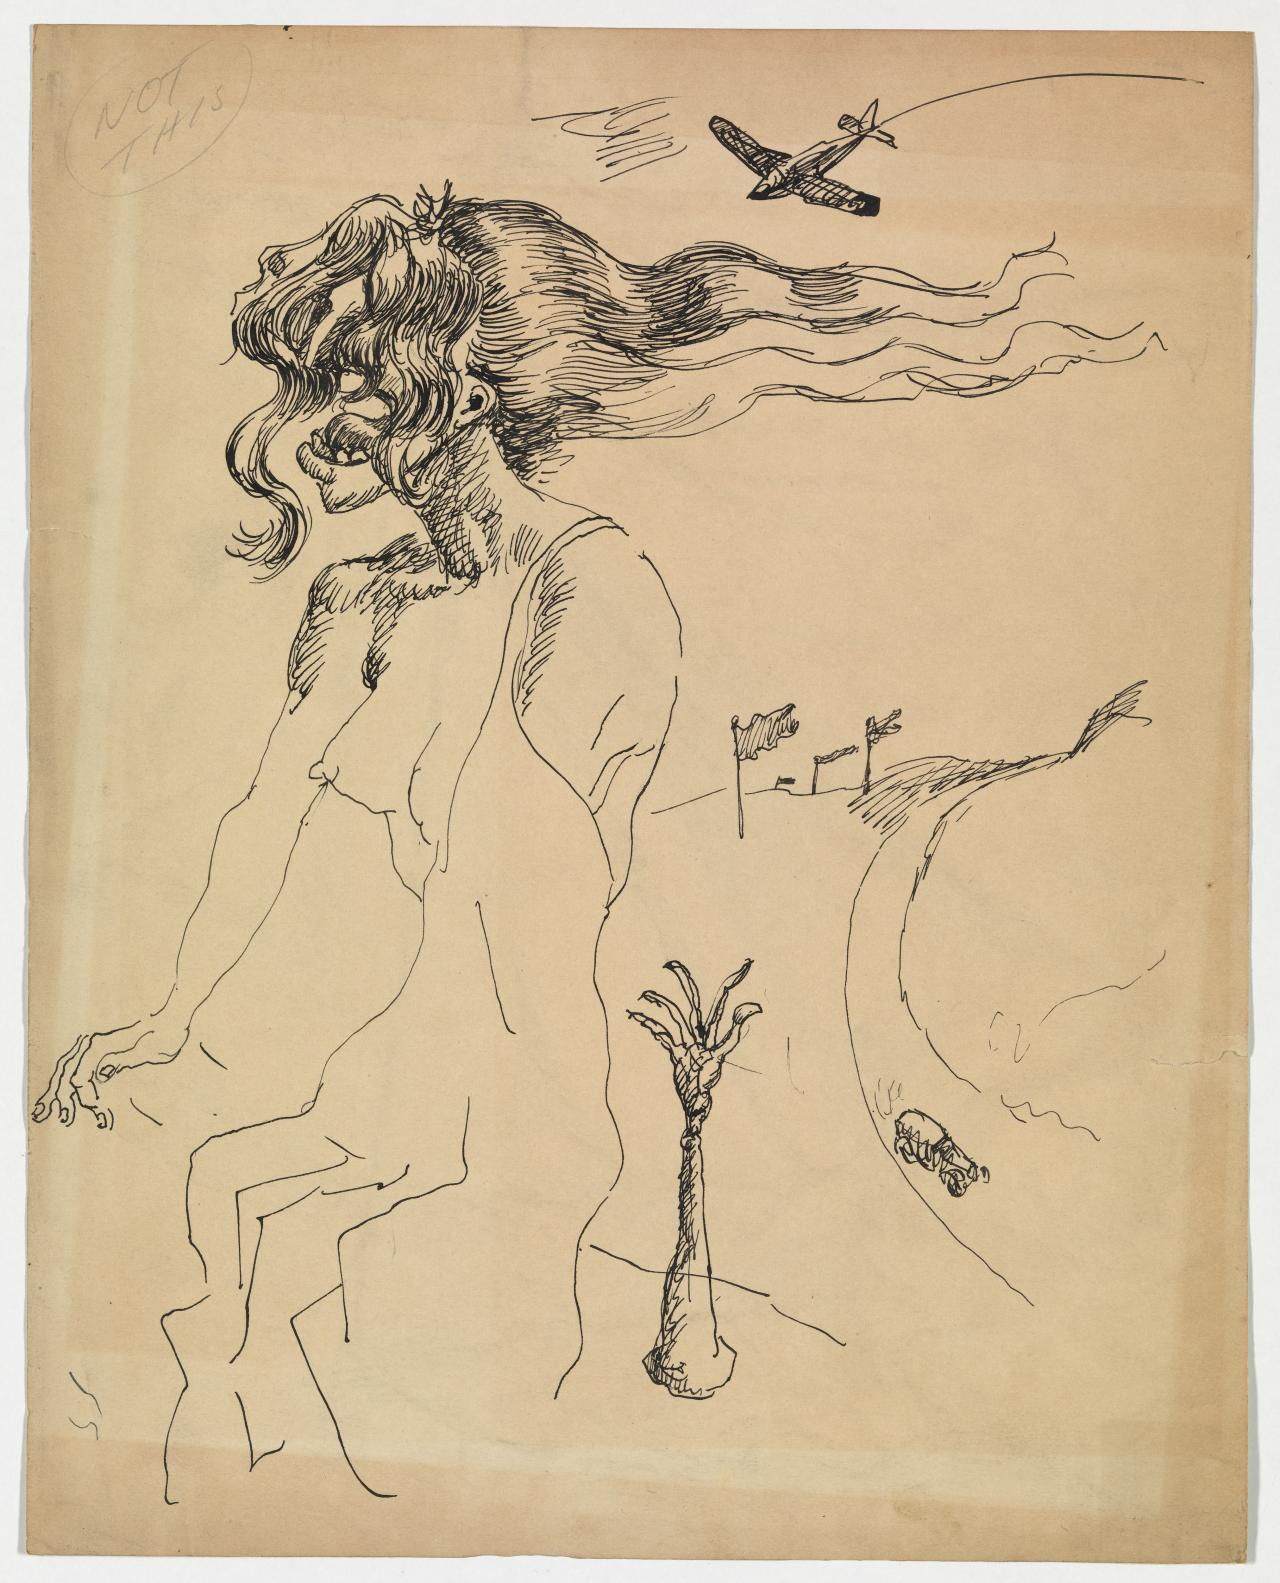 Untitled (Screaming female form with flowing hair, aeroplane and car)